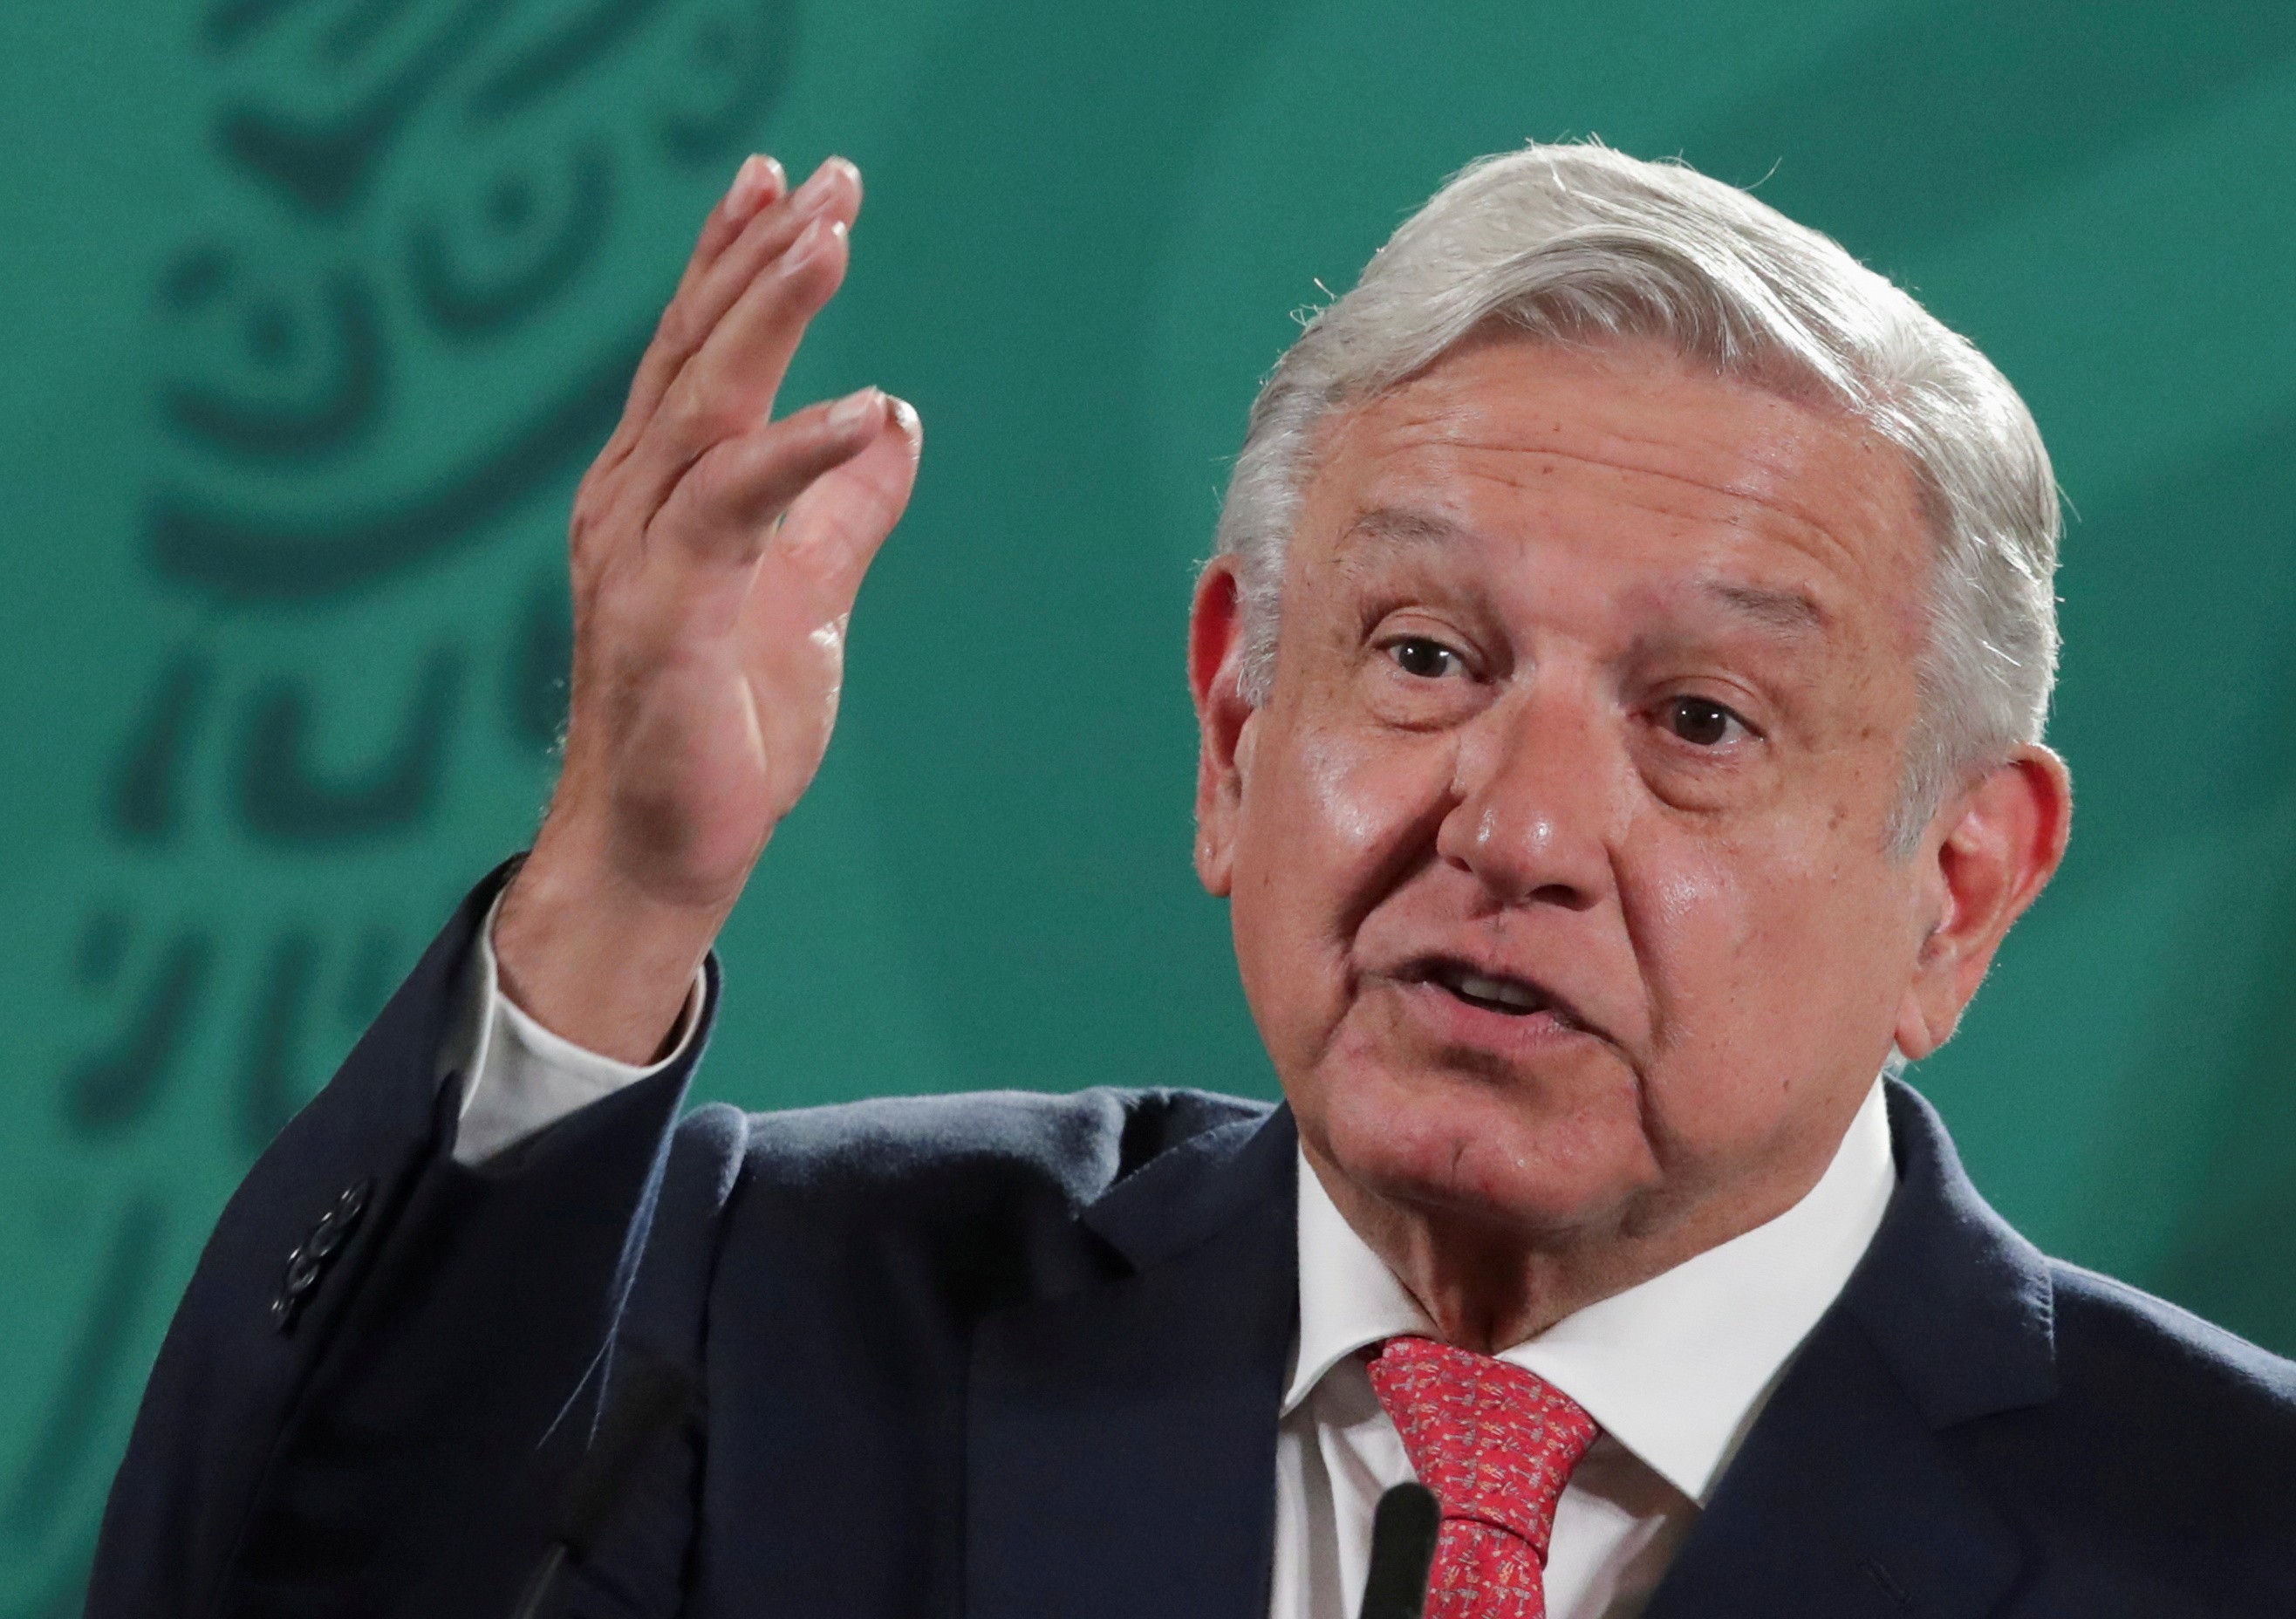 Mexico's President Andres Manuel Lopez Obrador speaks during a news conference about the results of the mid-term election, at the National Palace in Mexico City, Mexico June 7, 2021. REUTERS/Henry Romero/File Photo